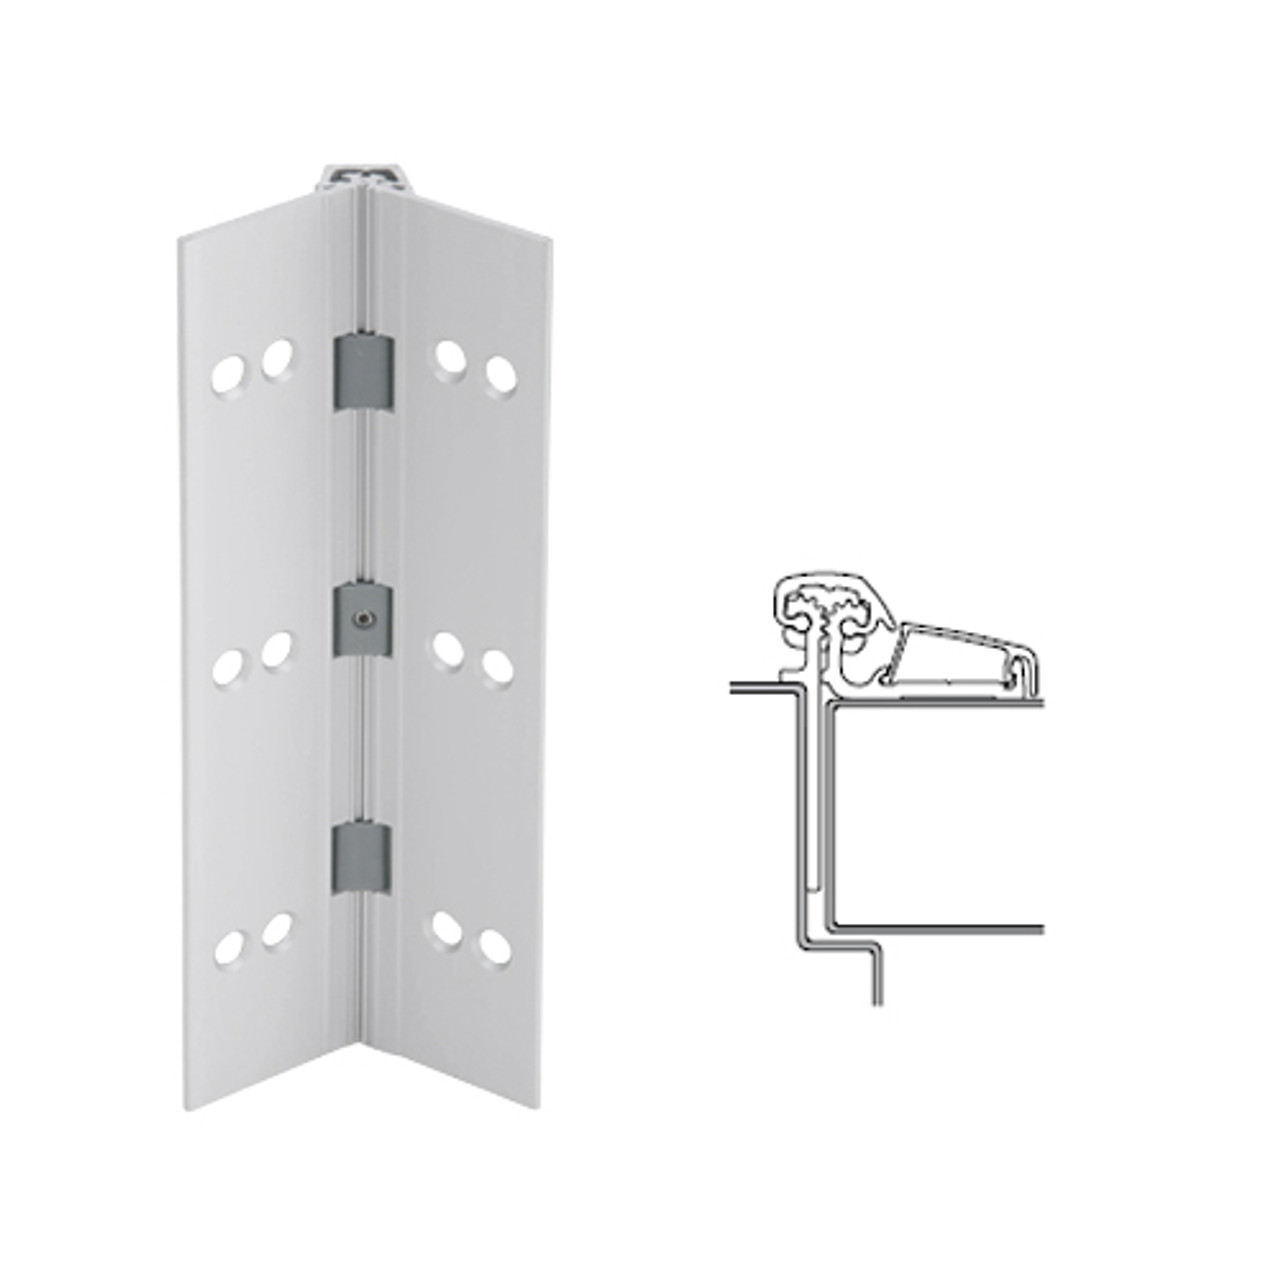 053XY-US28-85-SECWDHM IVES Adjustable Half Surface Continuous Geared Hinges with Security Screws - Hex Pin Drive in Satin Aluminum